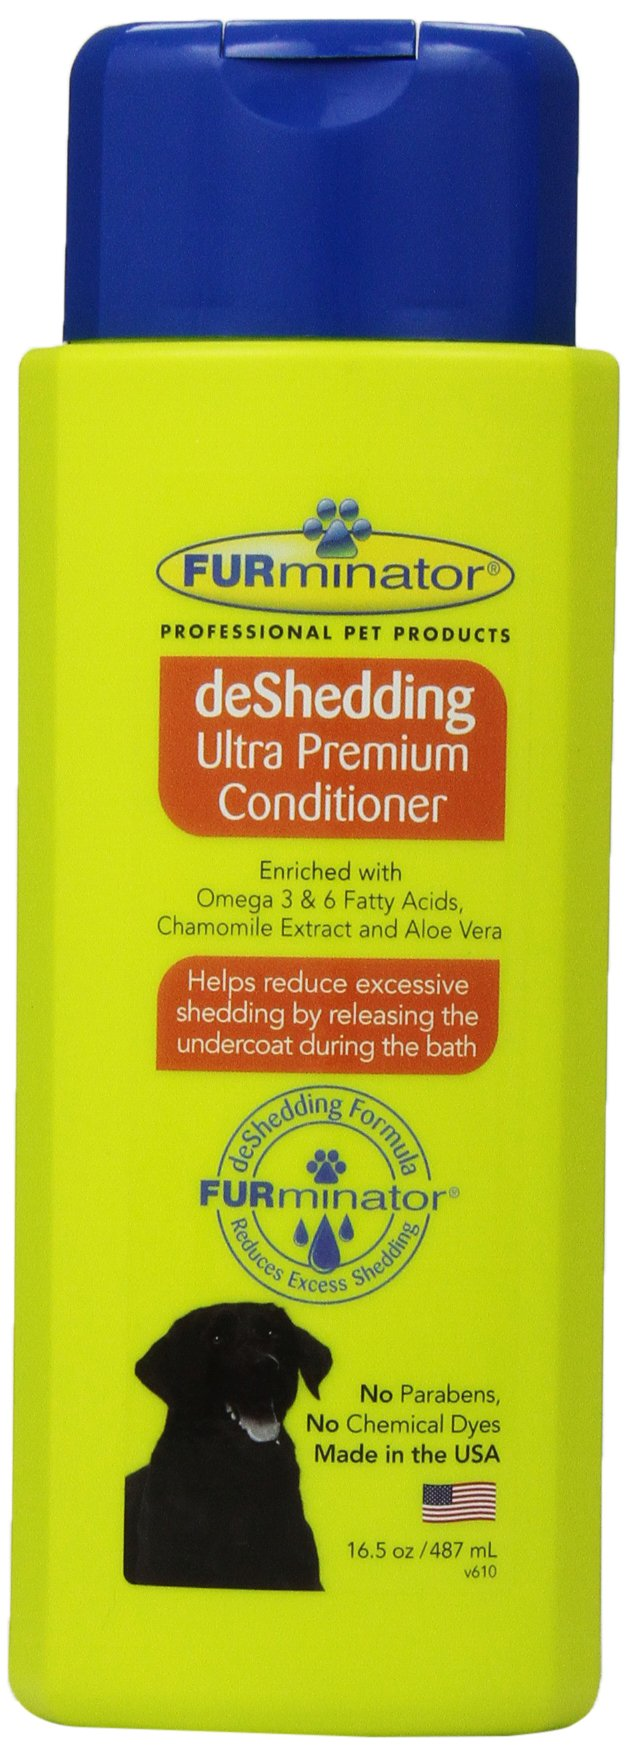 FURminator deShedding Conditioner, 16.5-Ounce